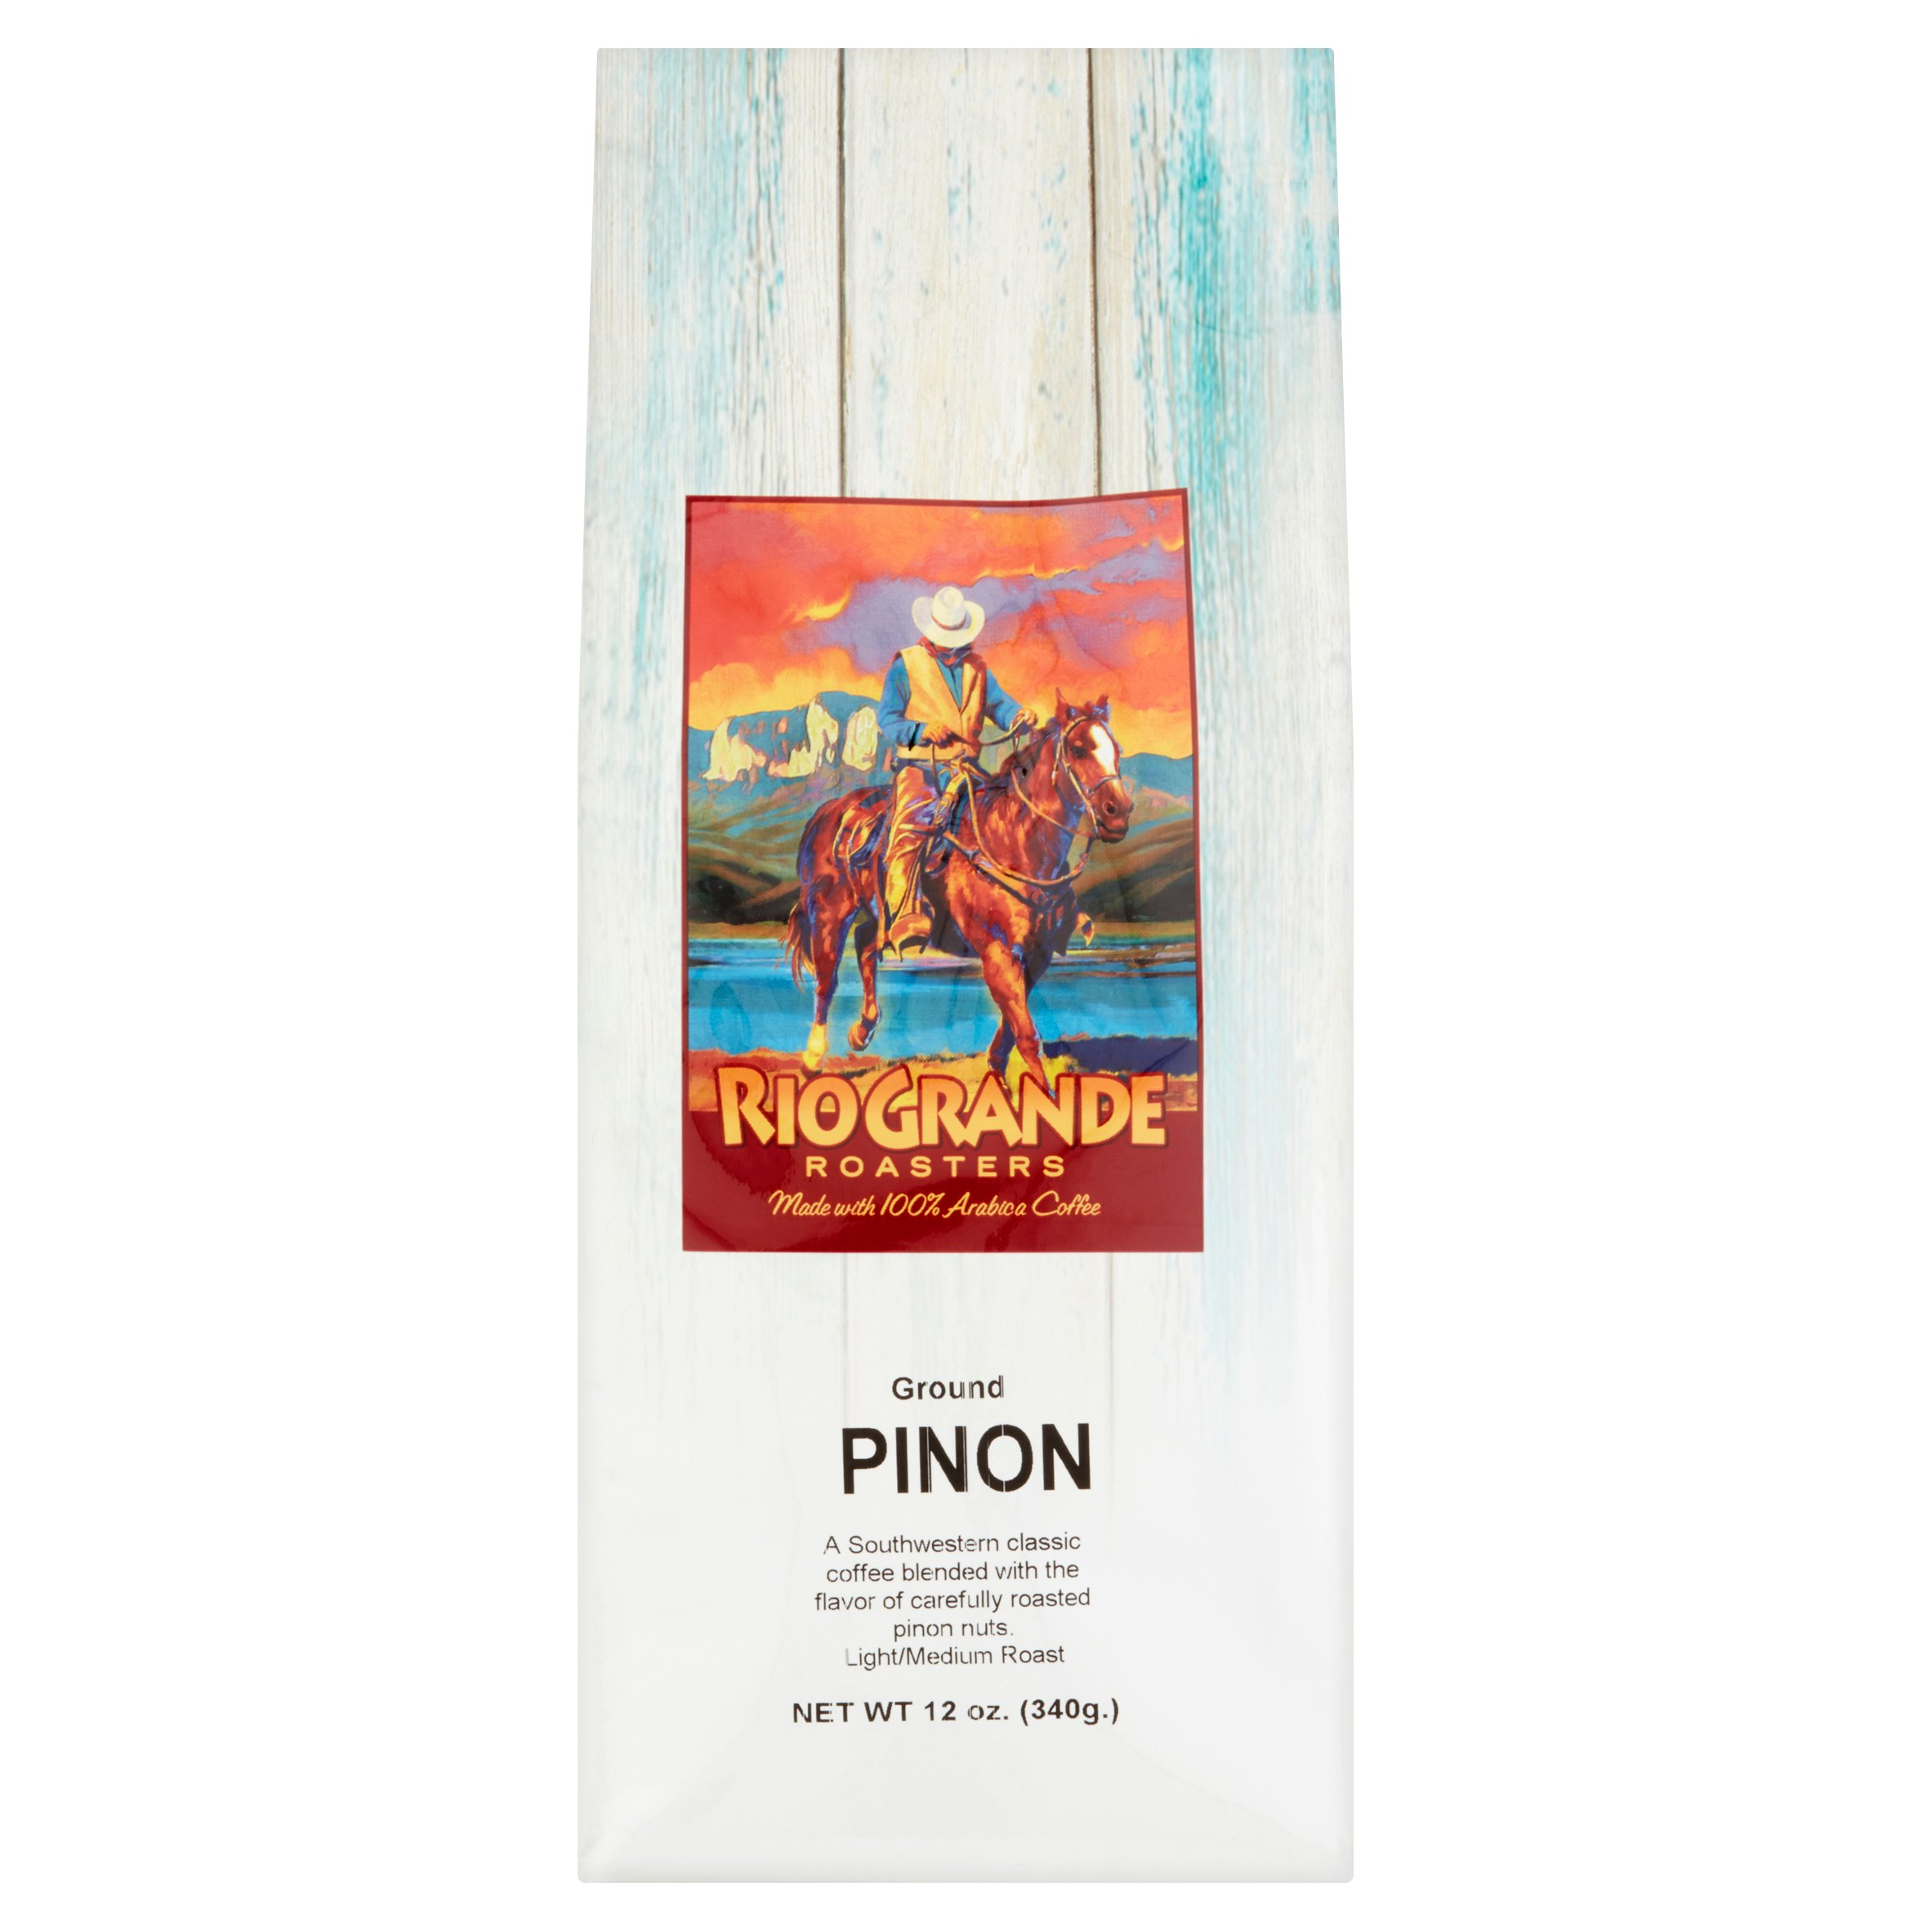 Rio Grande Roasters Pinon Ground Coffee, 12 oz